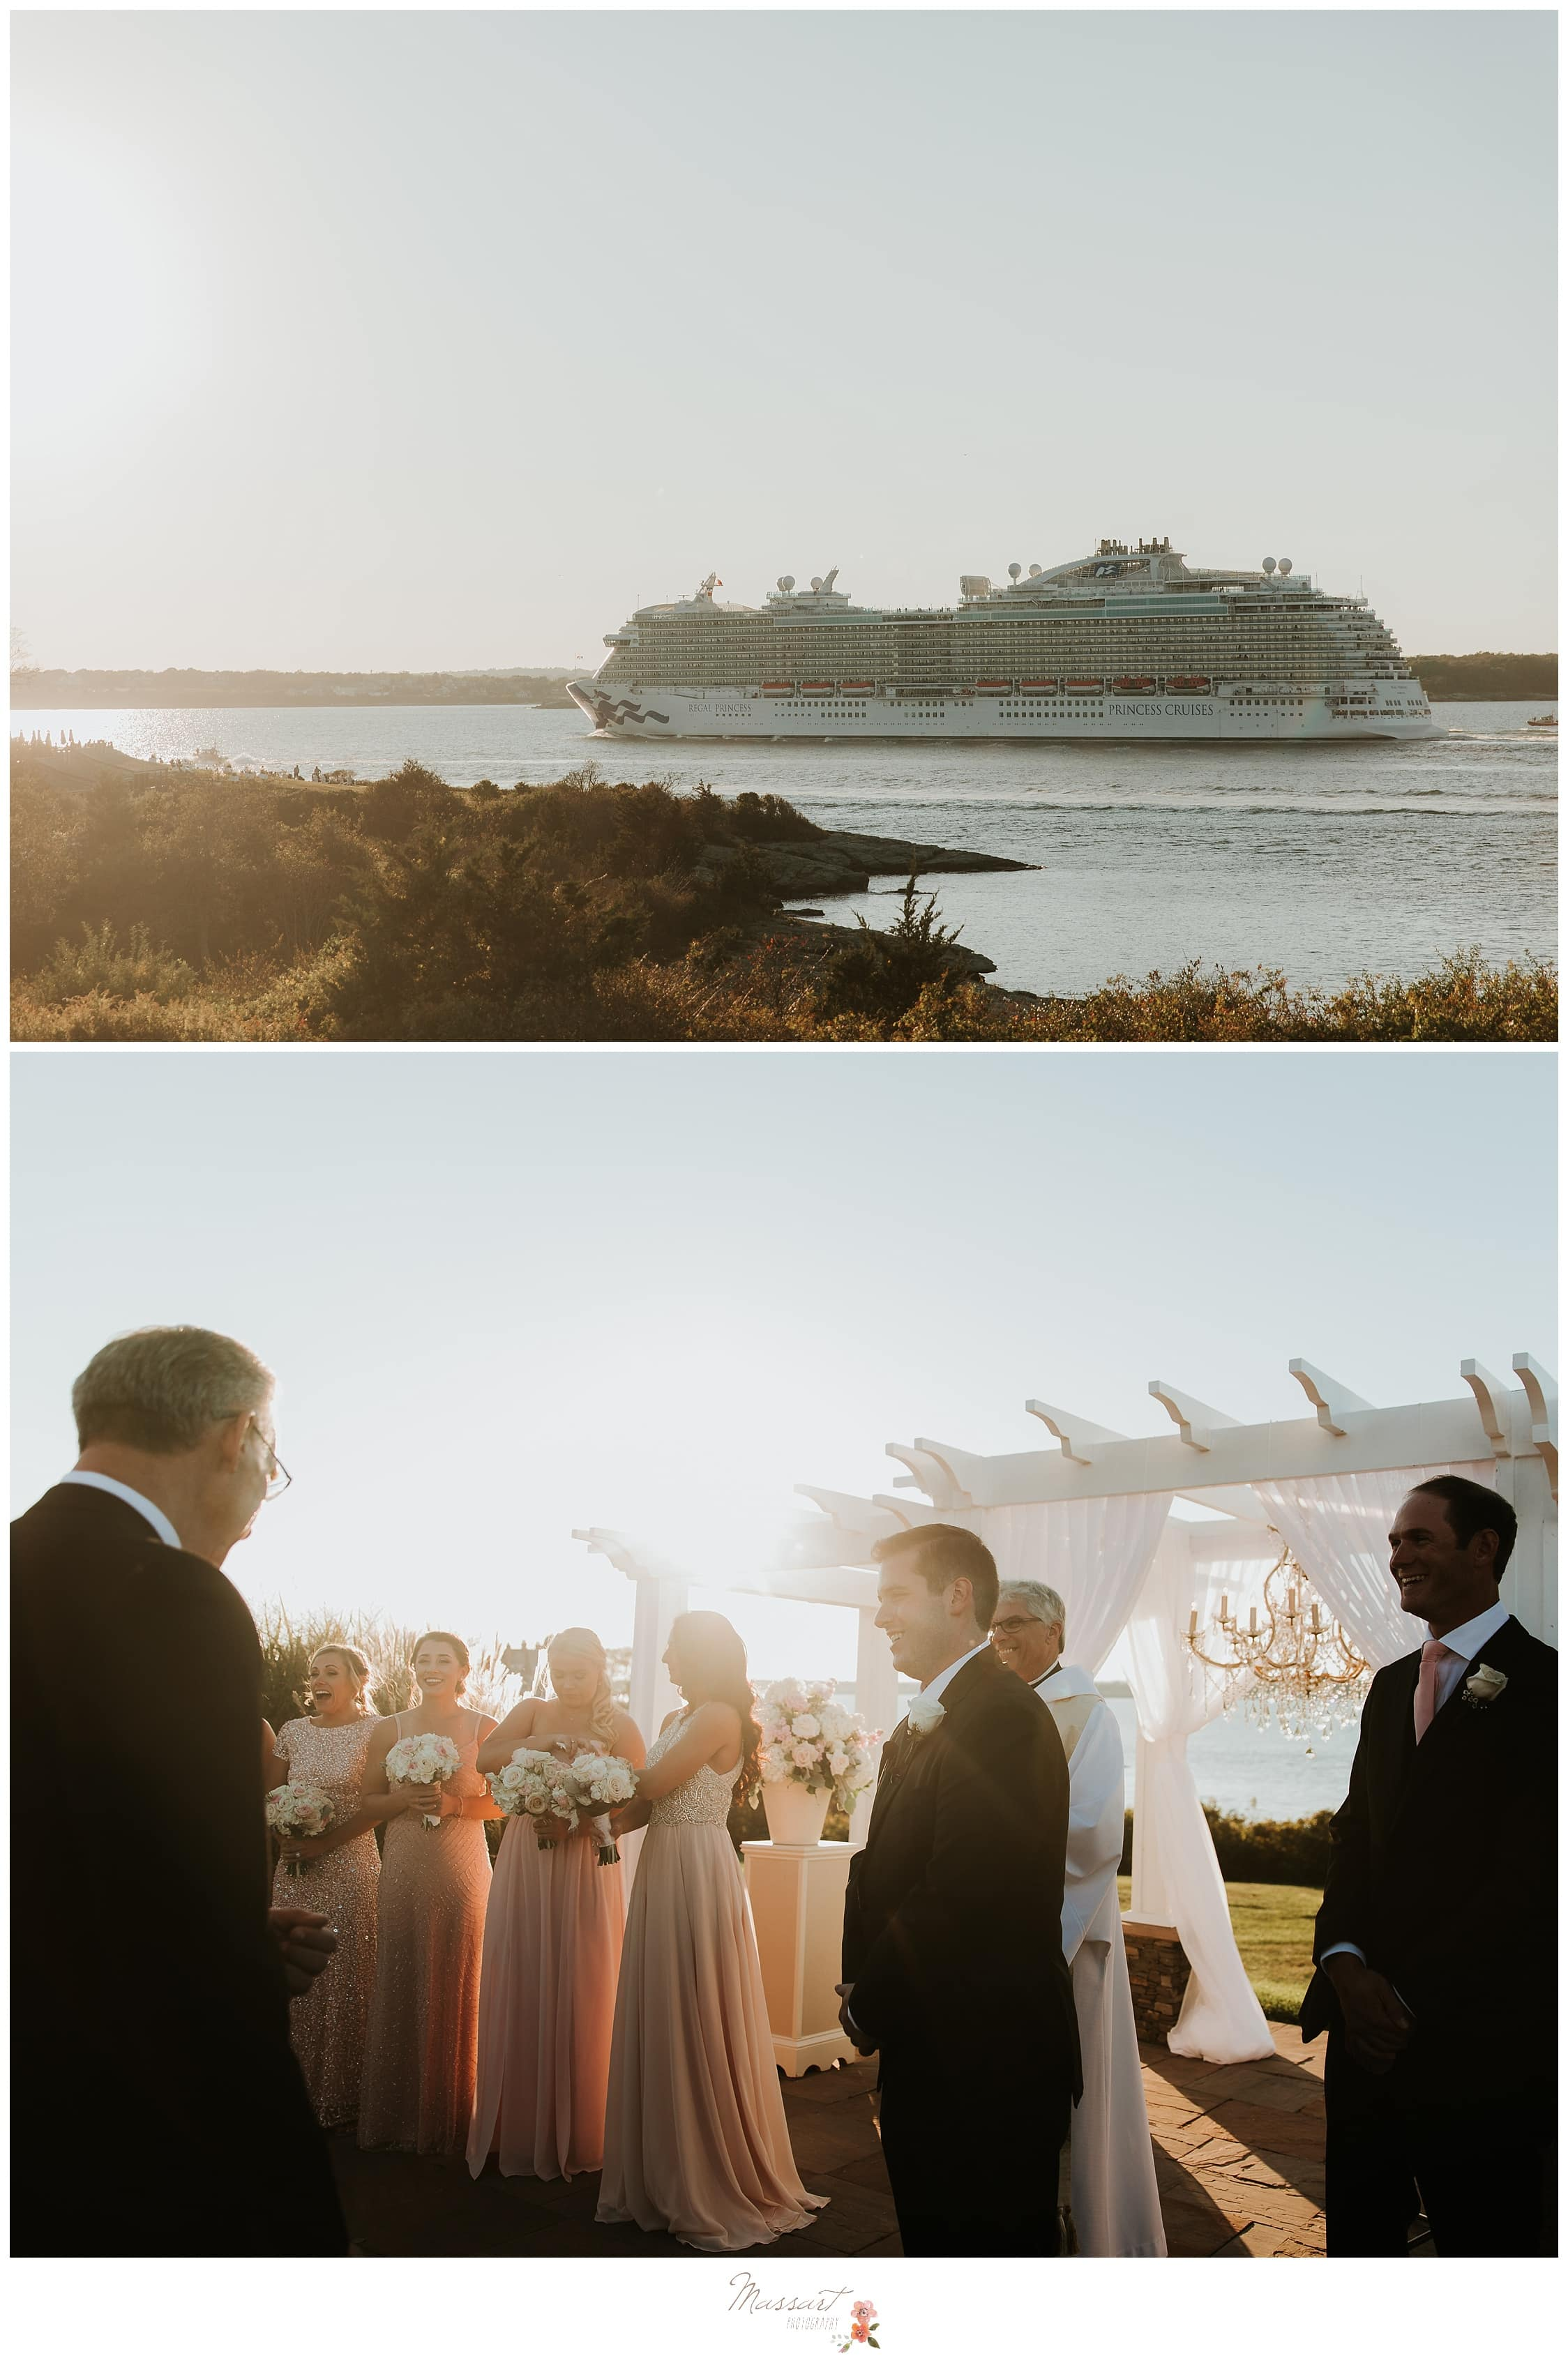 Cruise ship sails behind the ongoing wedding ceremony photographed by Massart Photography RI